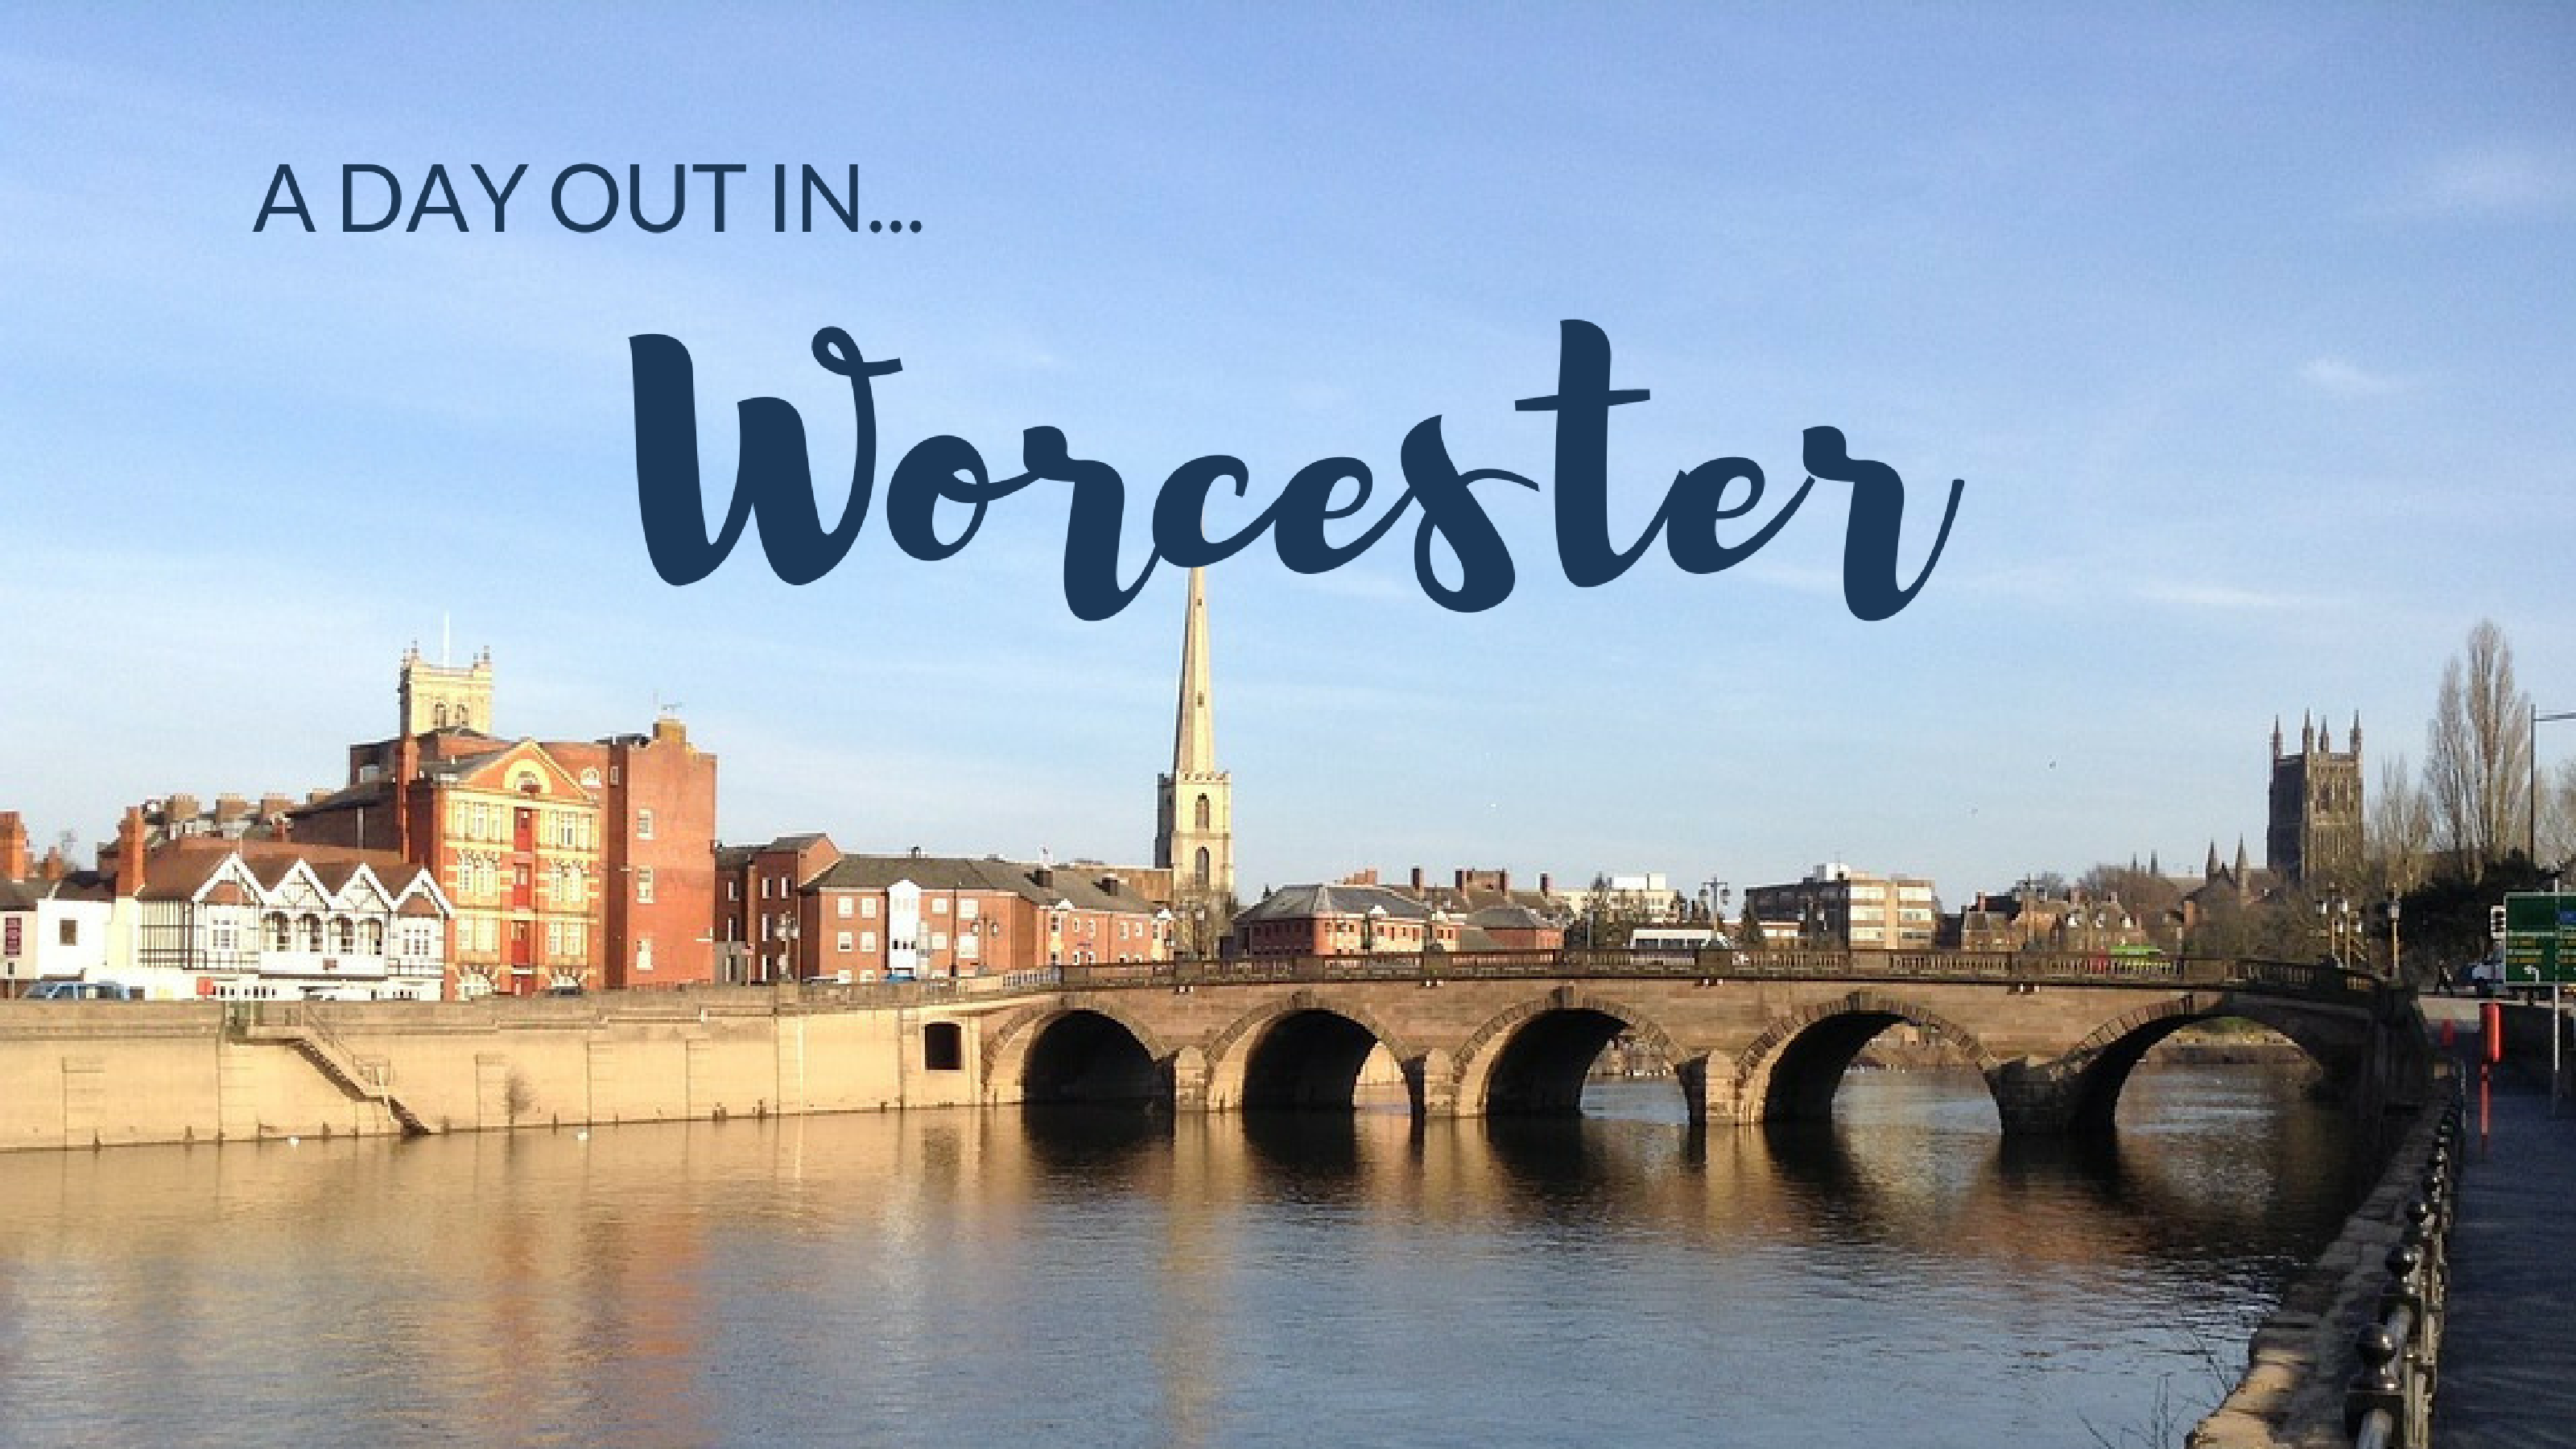 A Day Out in Worcester